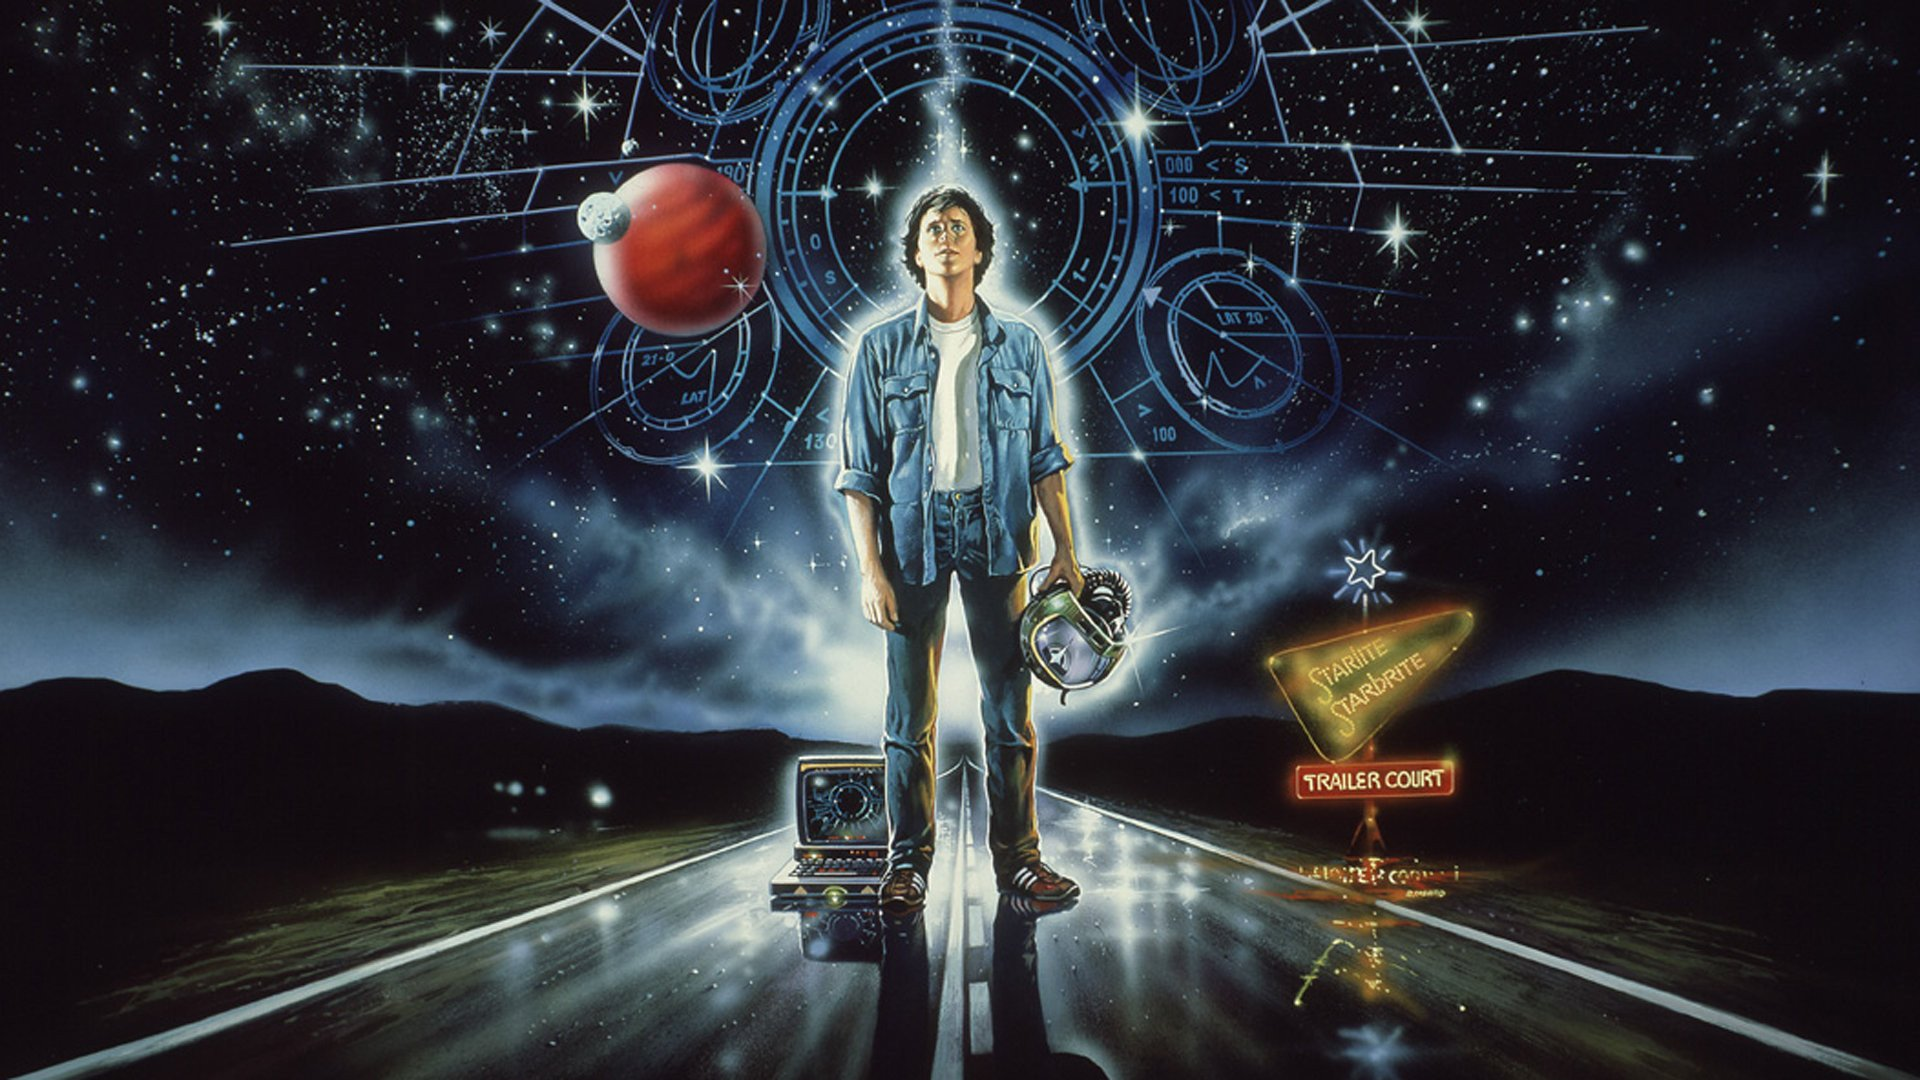 The Last Starfighter 2 And Other Classic Movies Being Resurrected For Sequels